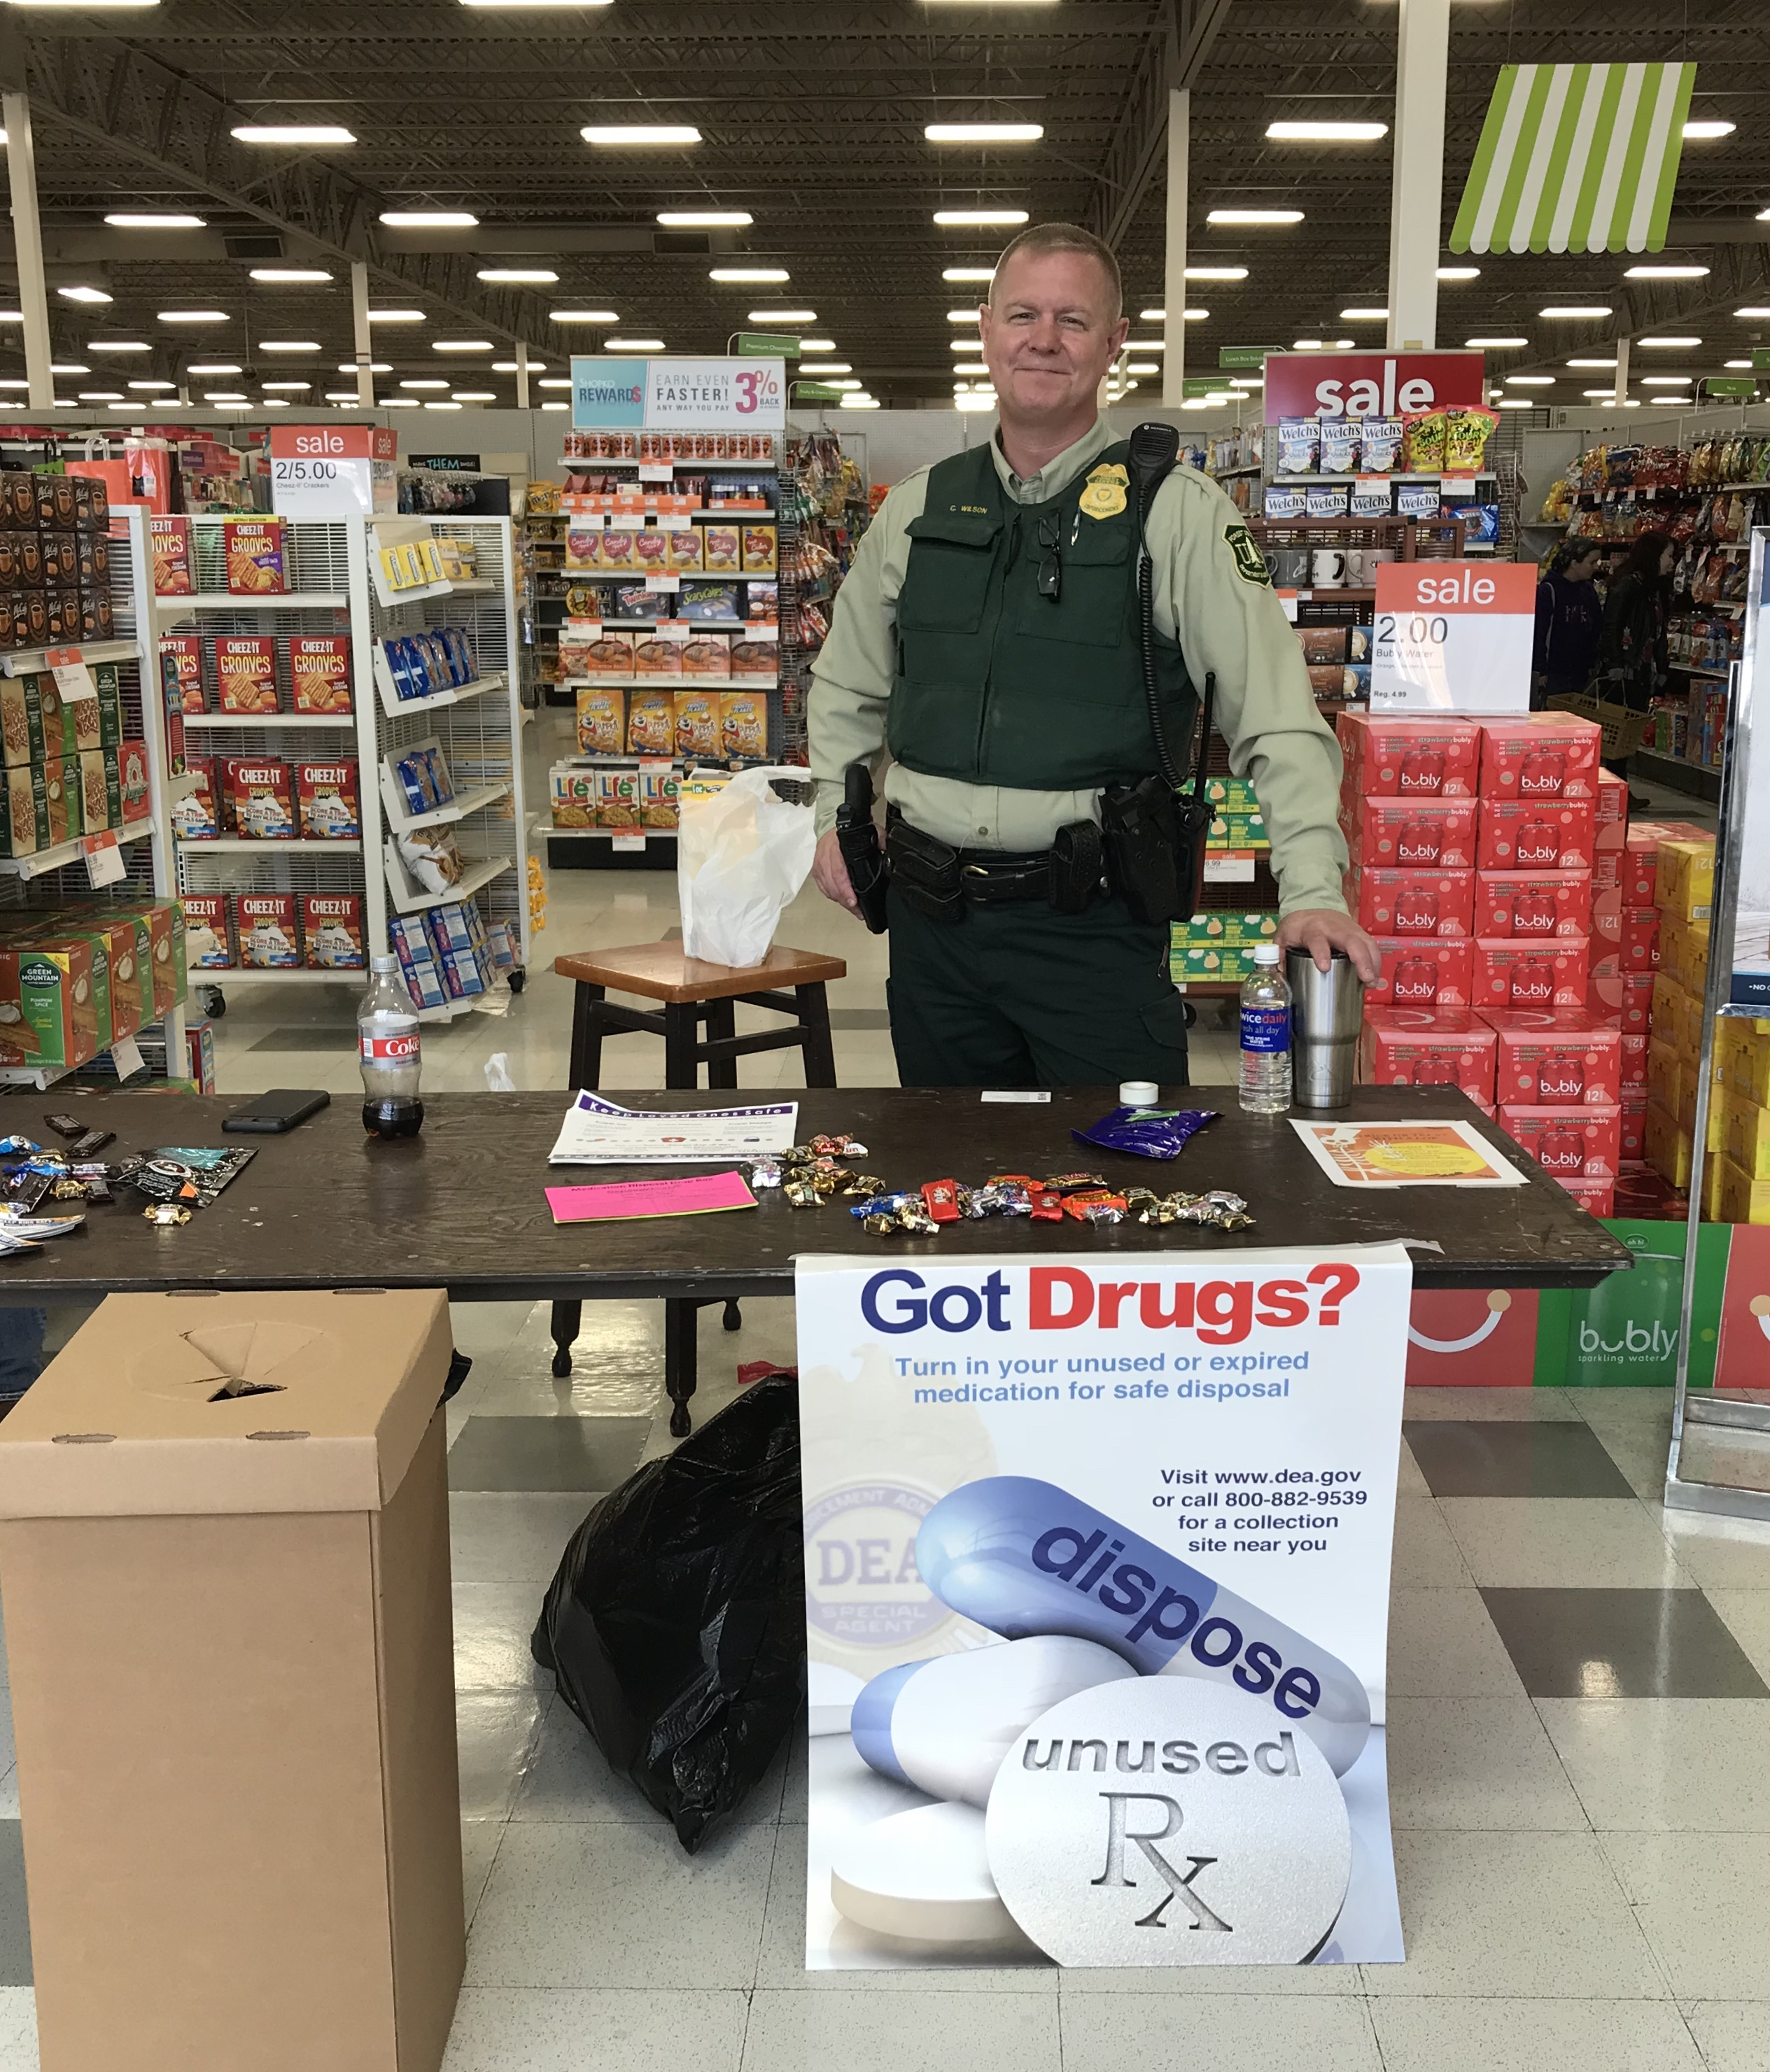 Forest Law Enforcement Officer standing in a store